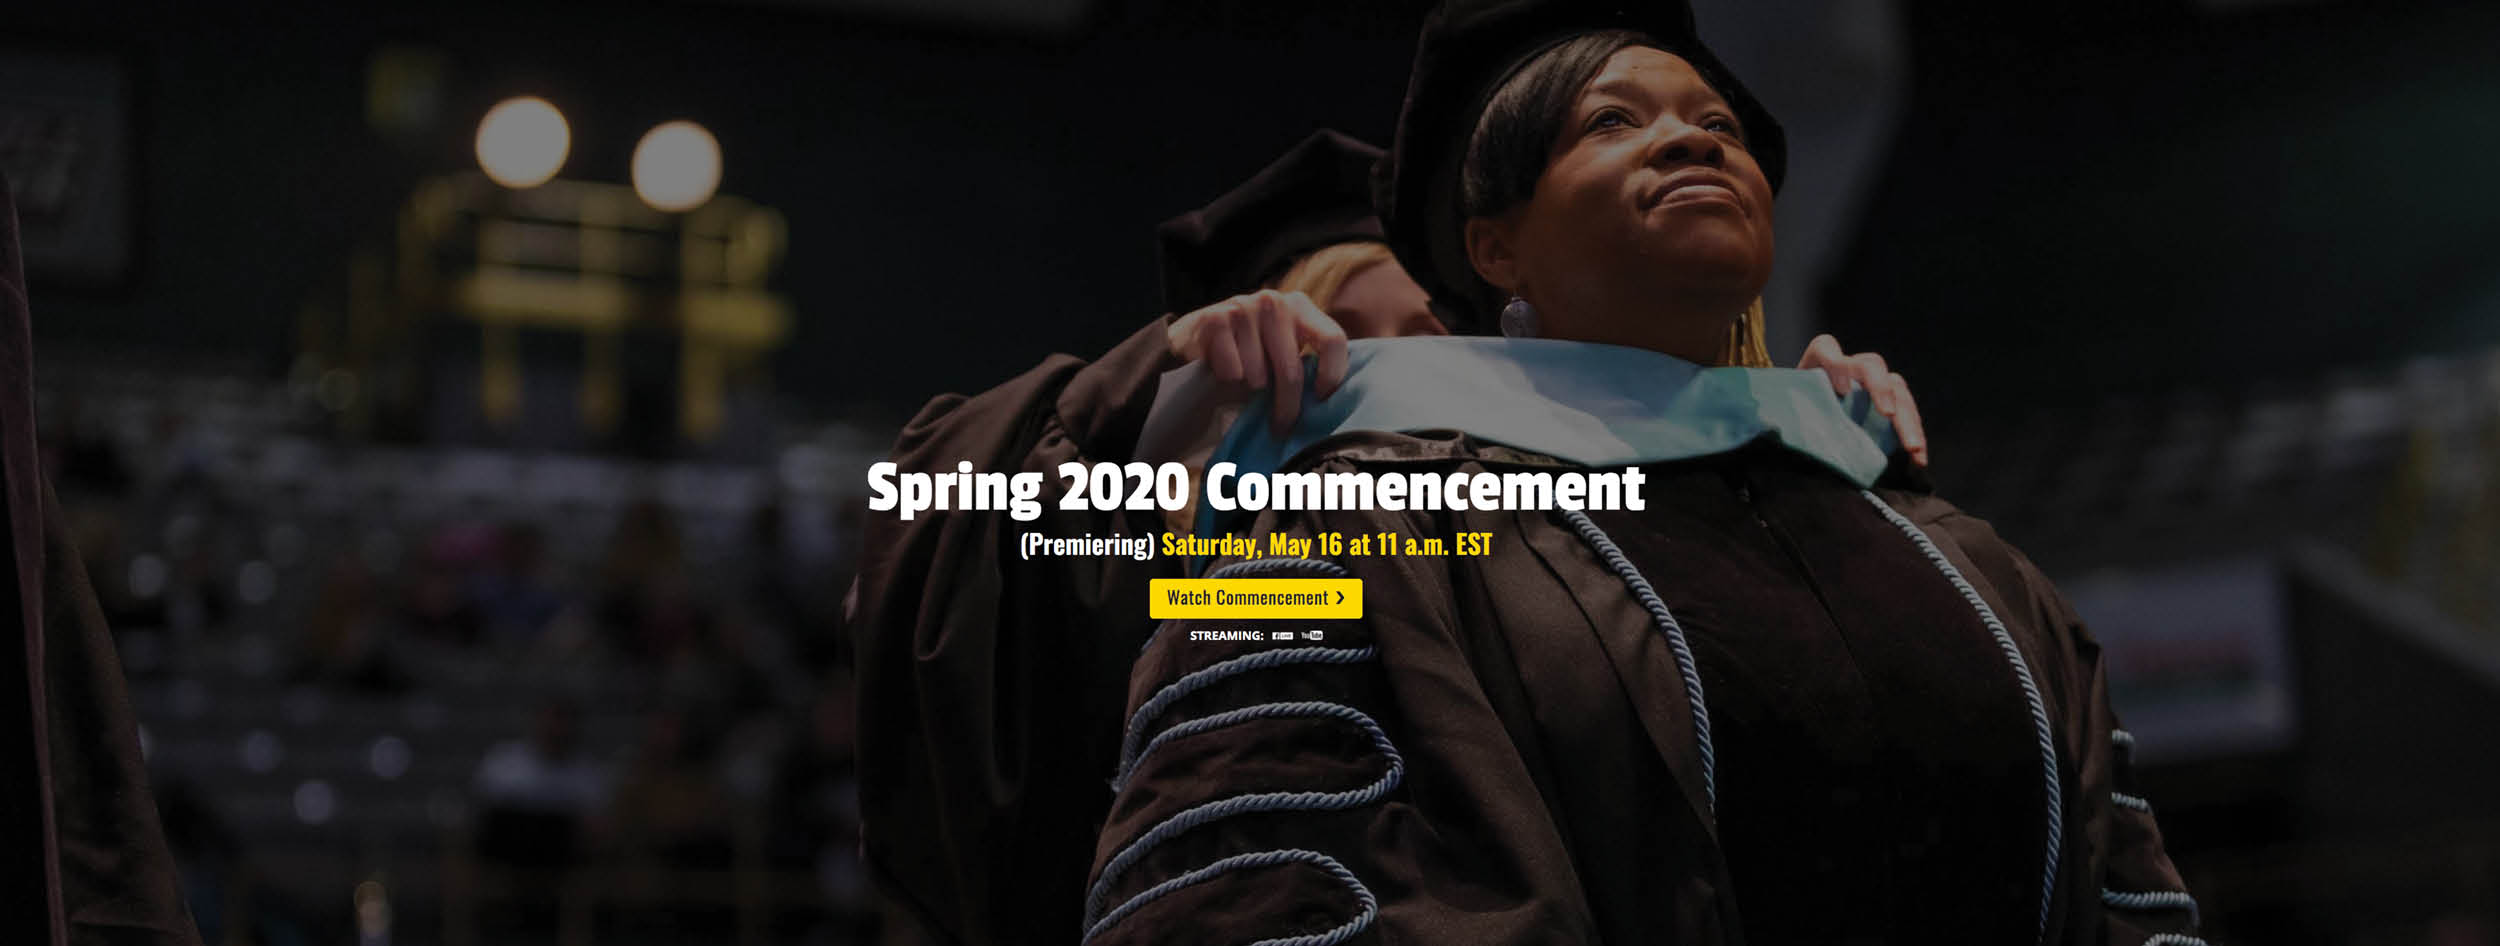 Commencement Live Stream